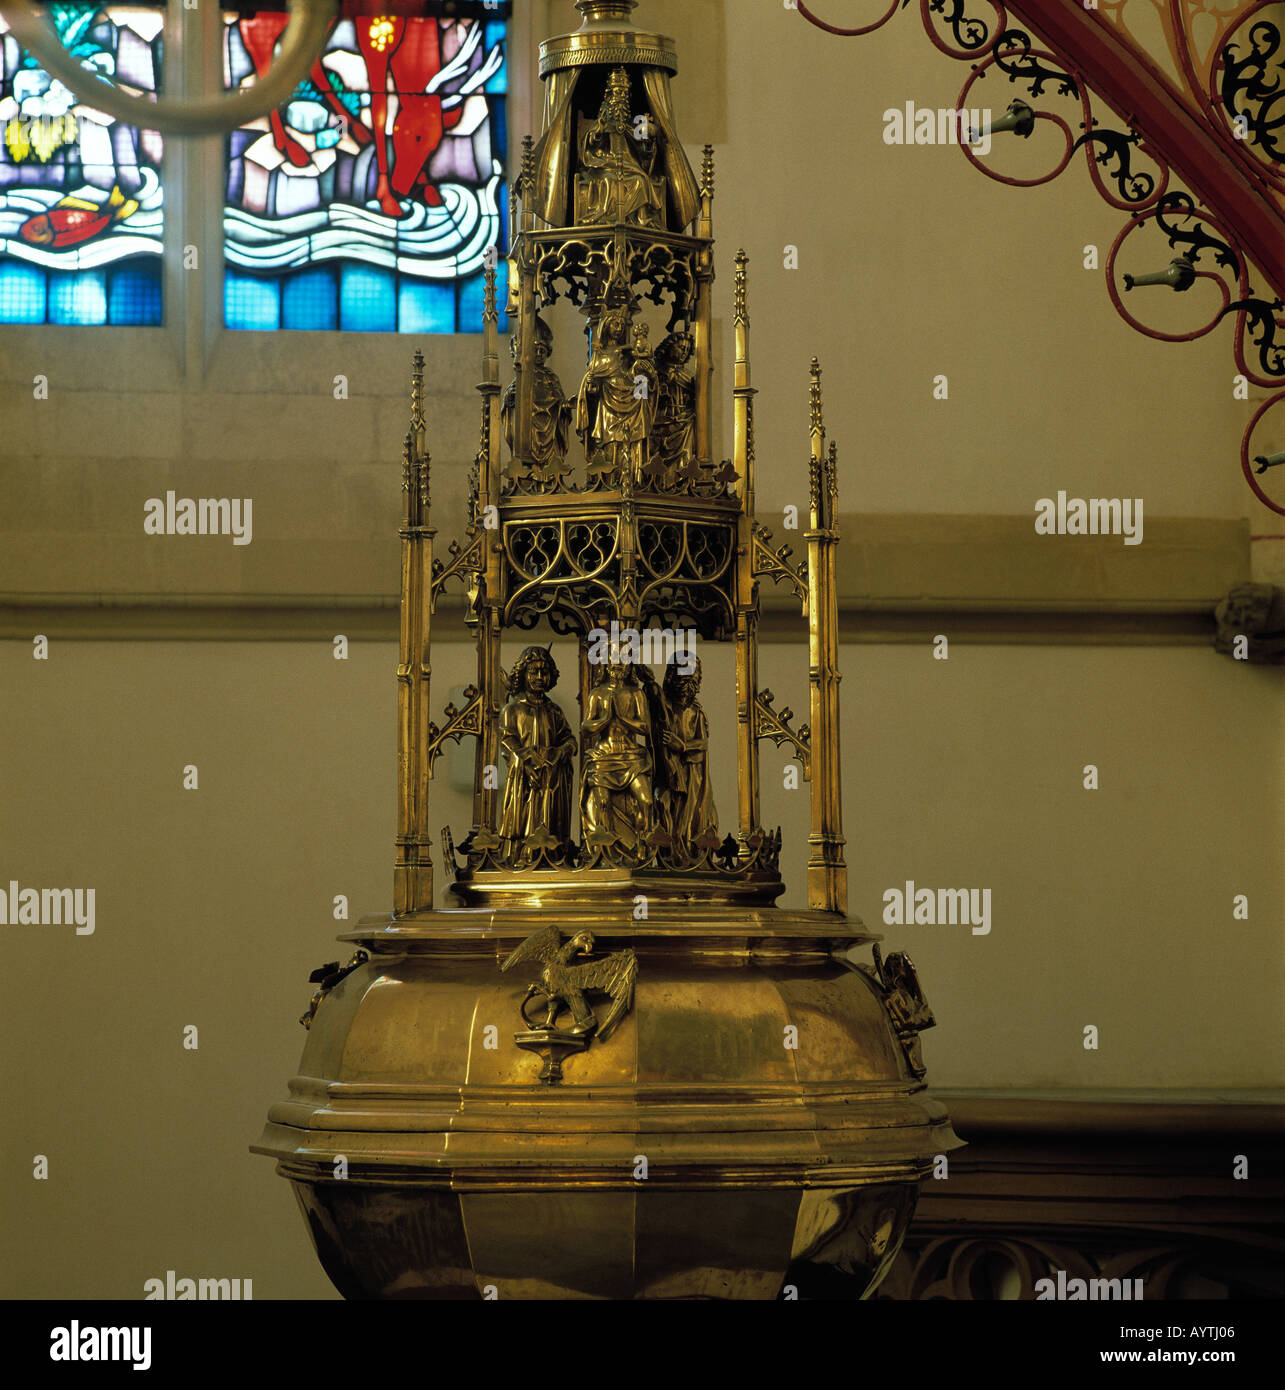 Taufbecken in der St. Jan-Kathedrale in sHertogenbosch, NordbrabantStock Photo